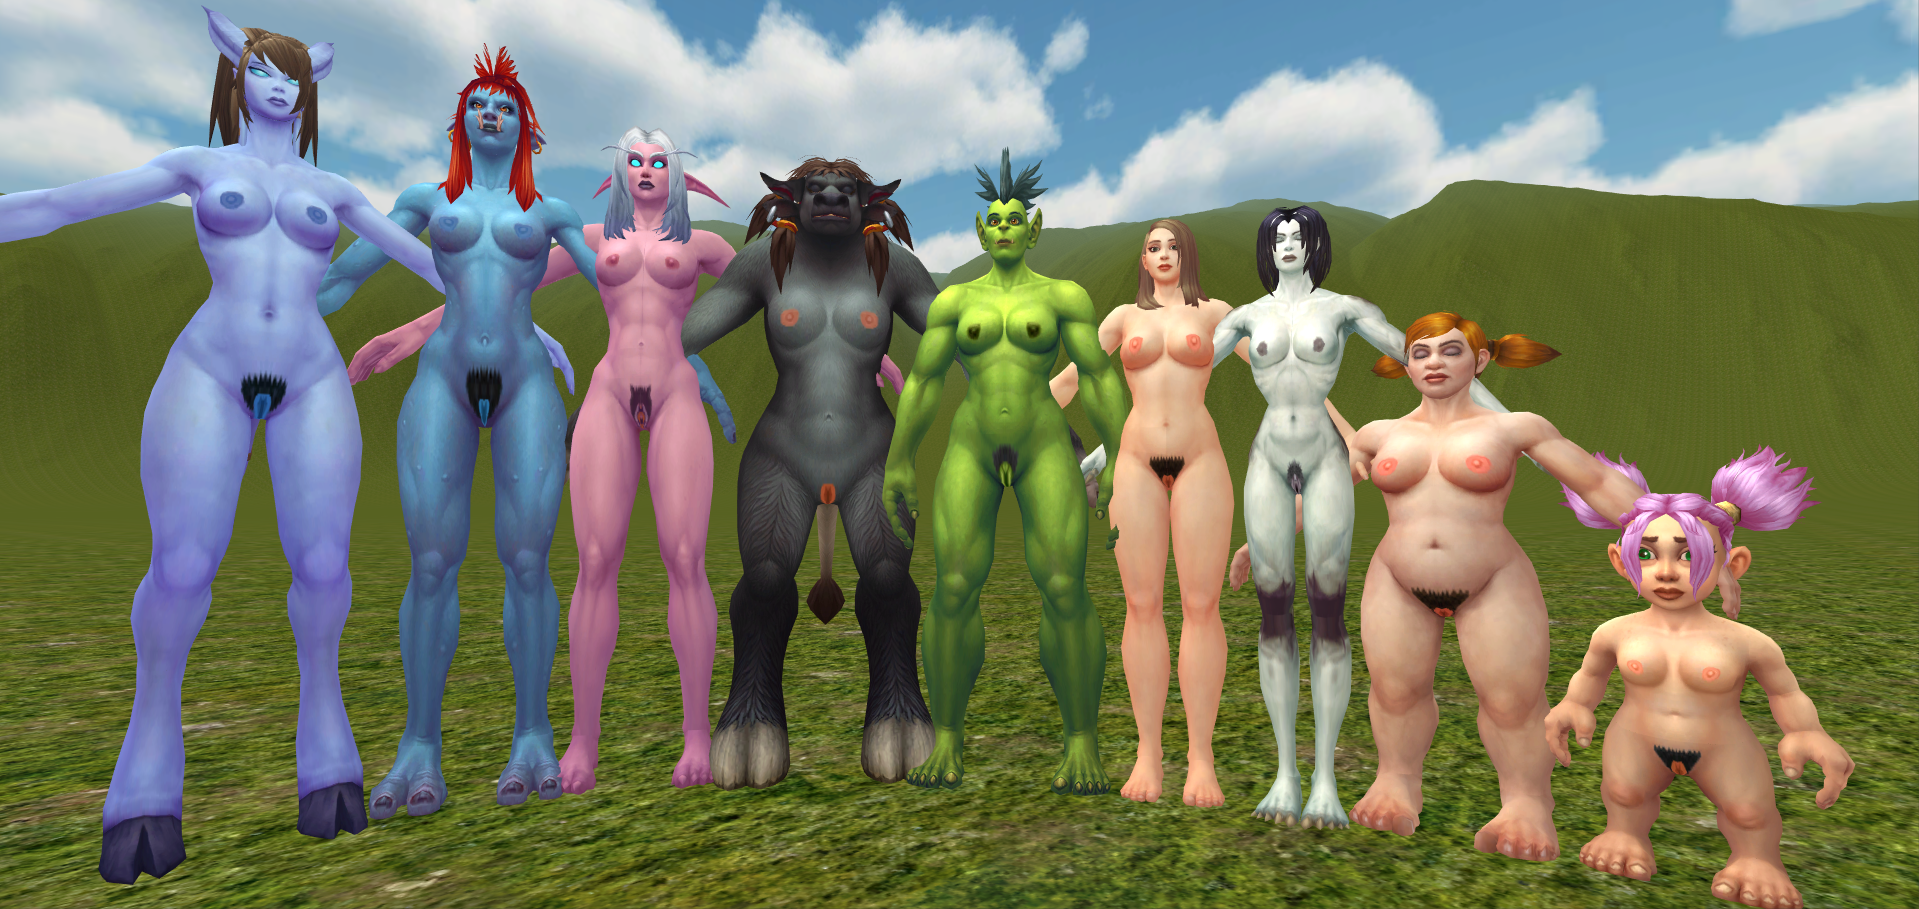 Download the latest wow nude patch nude images